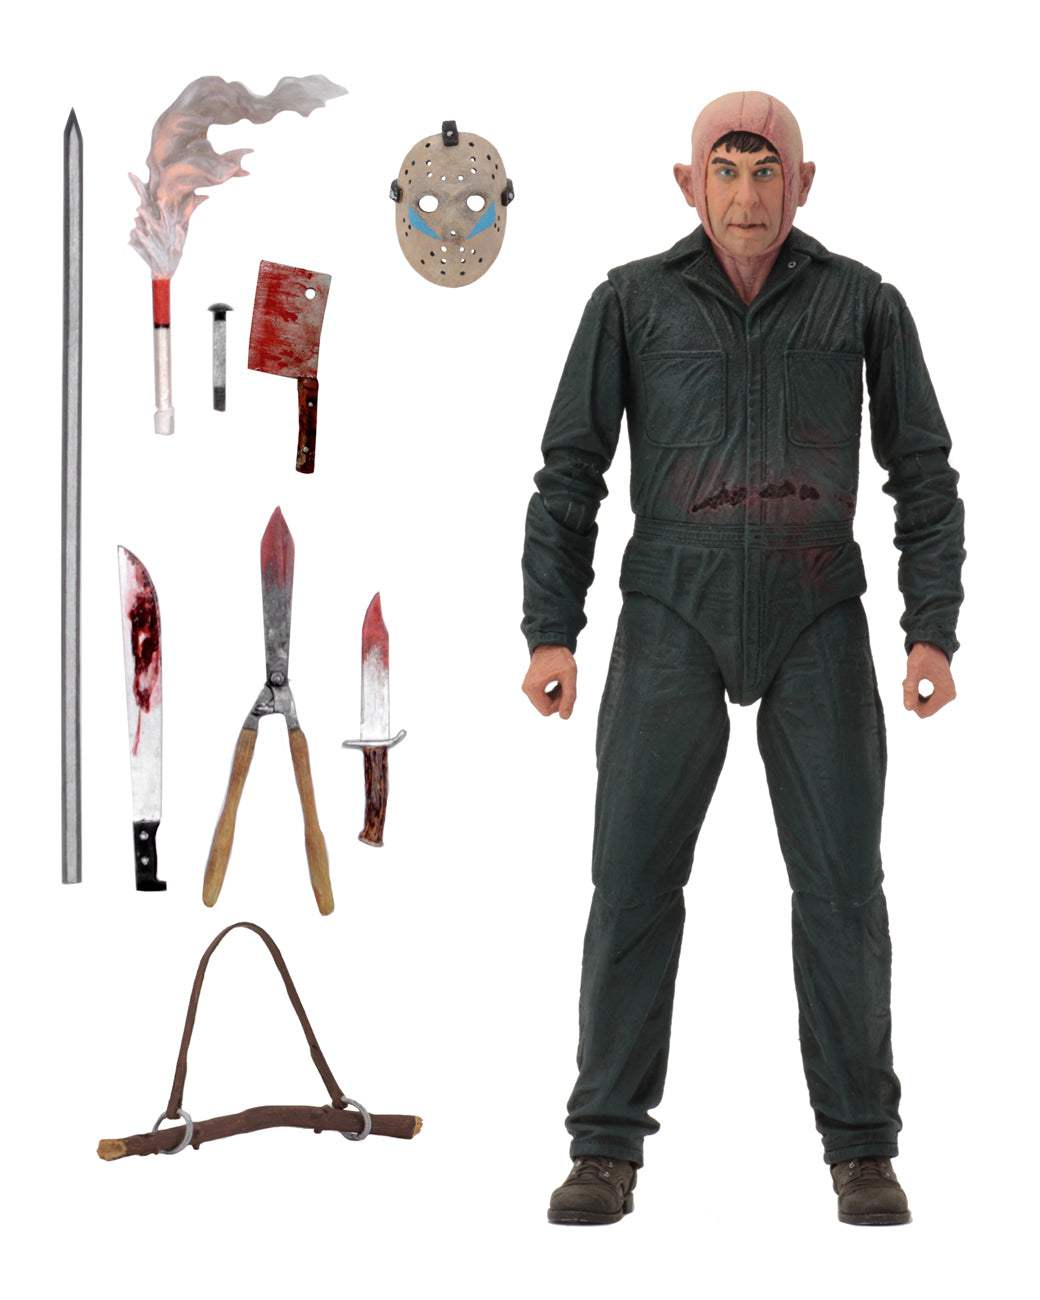 Friday The 13th - ROY BURNS - 7